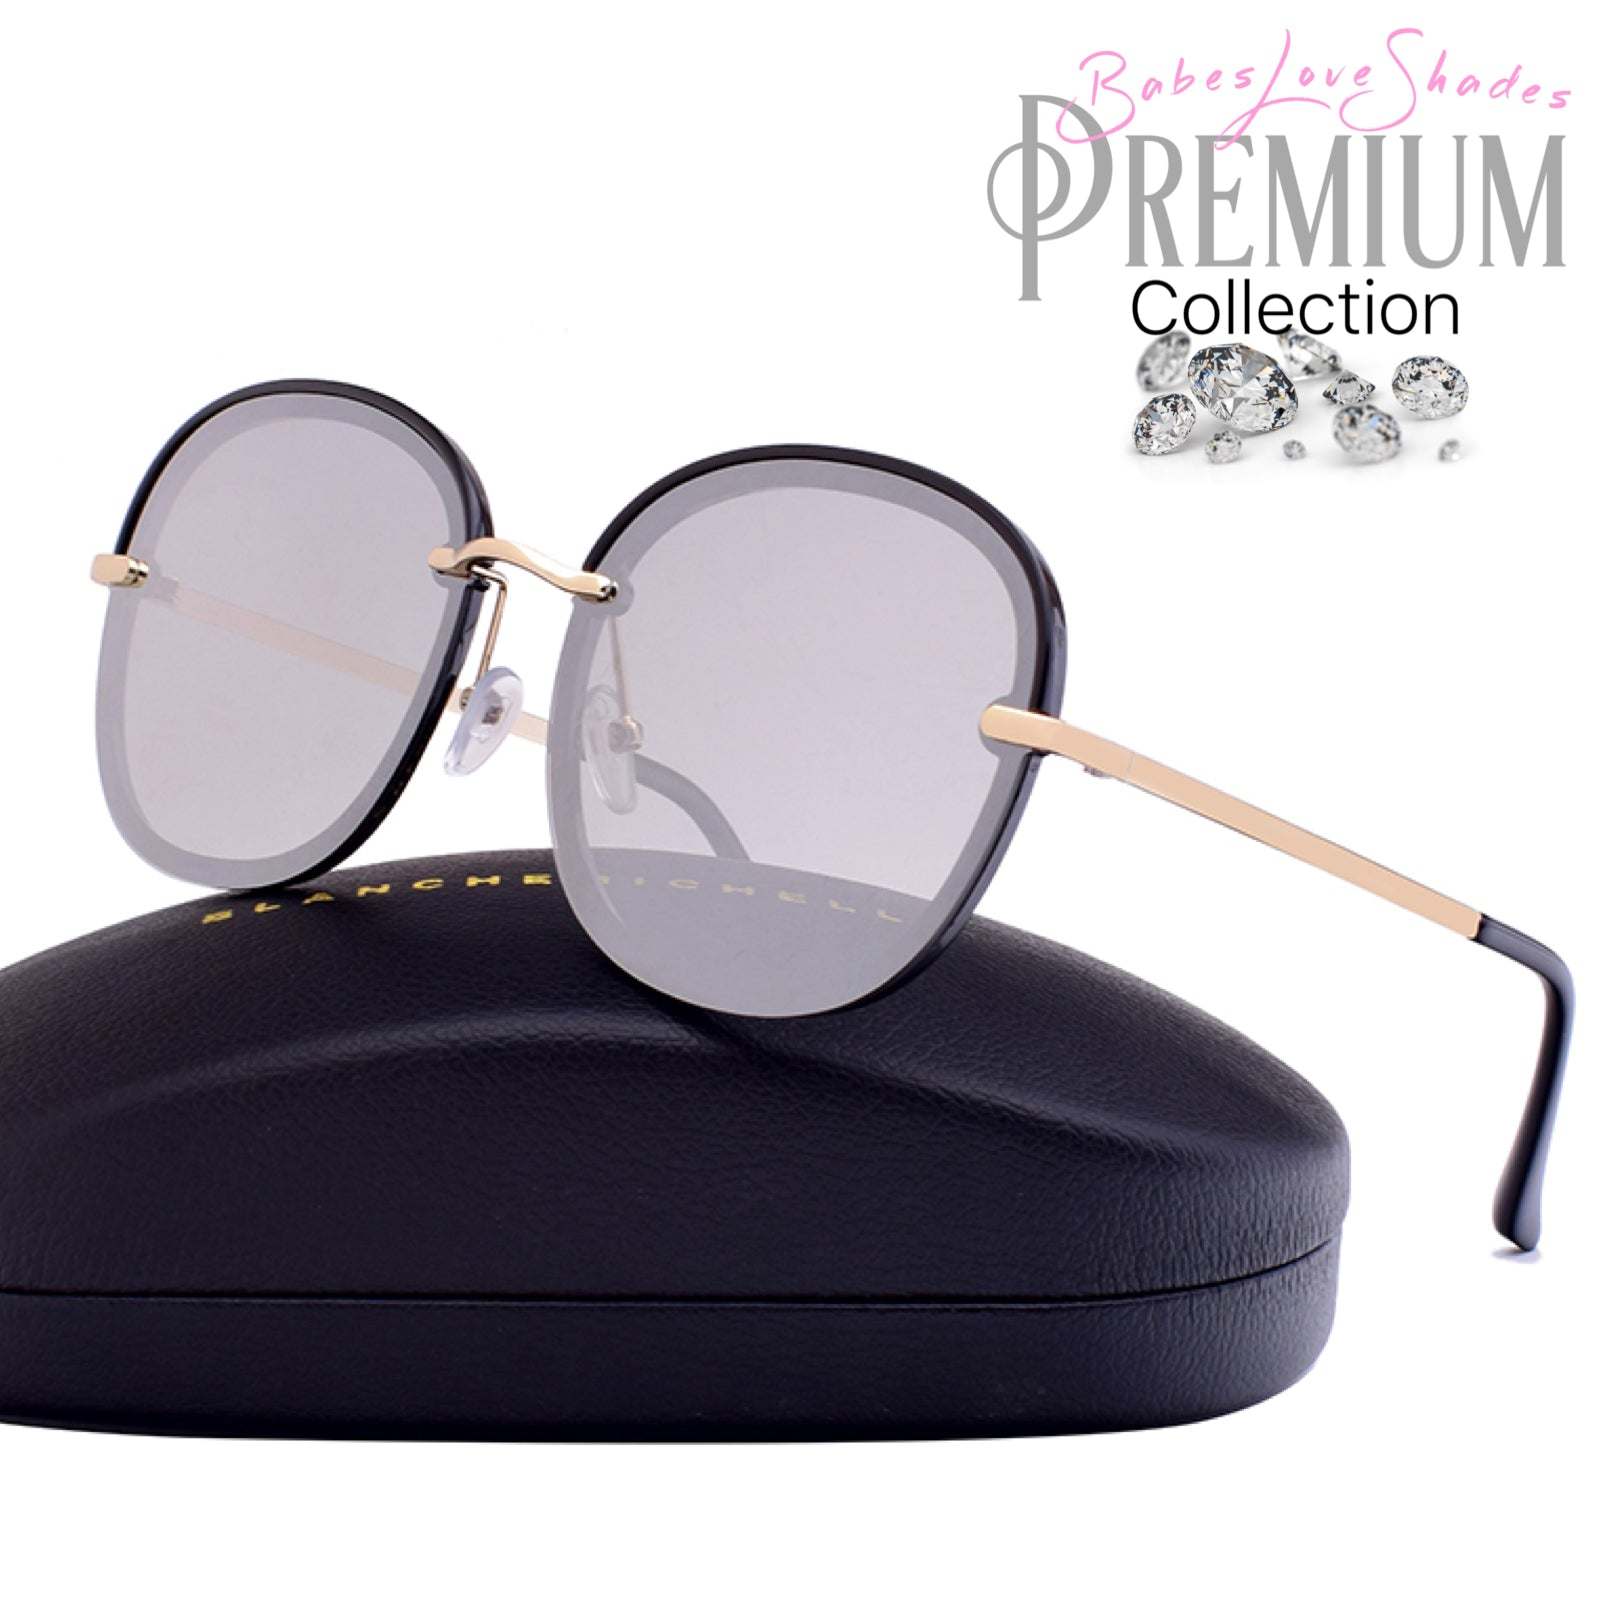 9d1a99fd4c Paloma - Oversized Mirrored Sunglasses  Premium Collection  – Babes ...